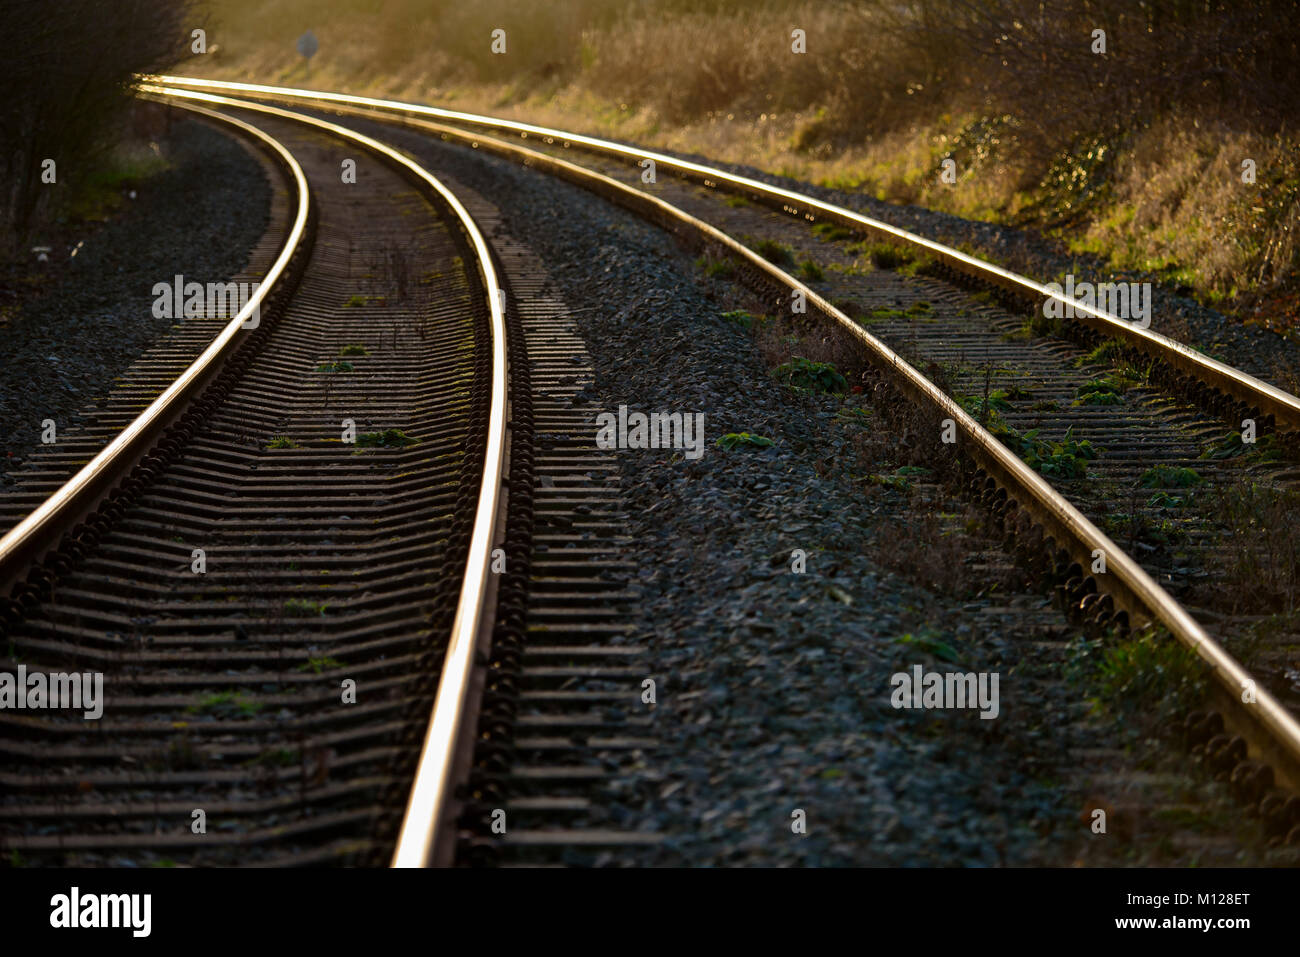 curved railway lines glinting in the evening golden sunshine - Stock Image